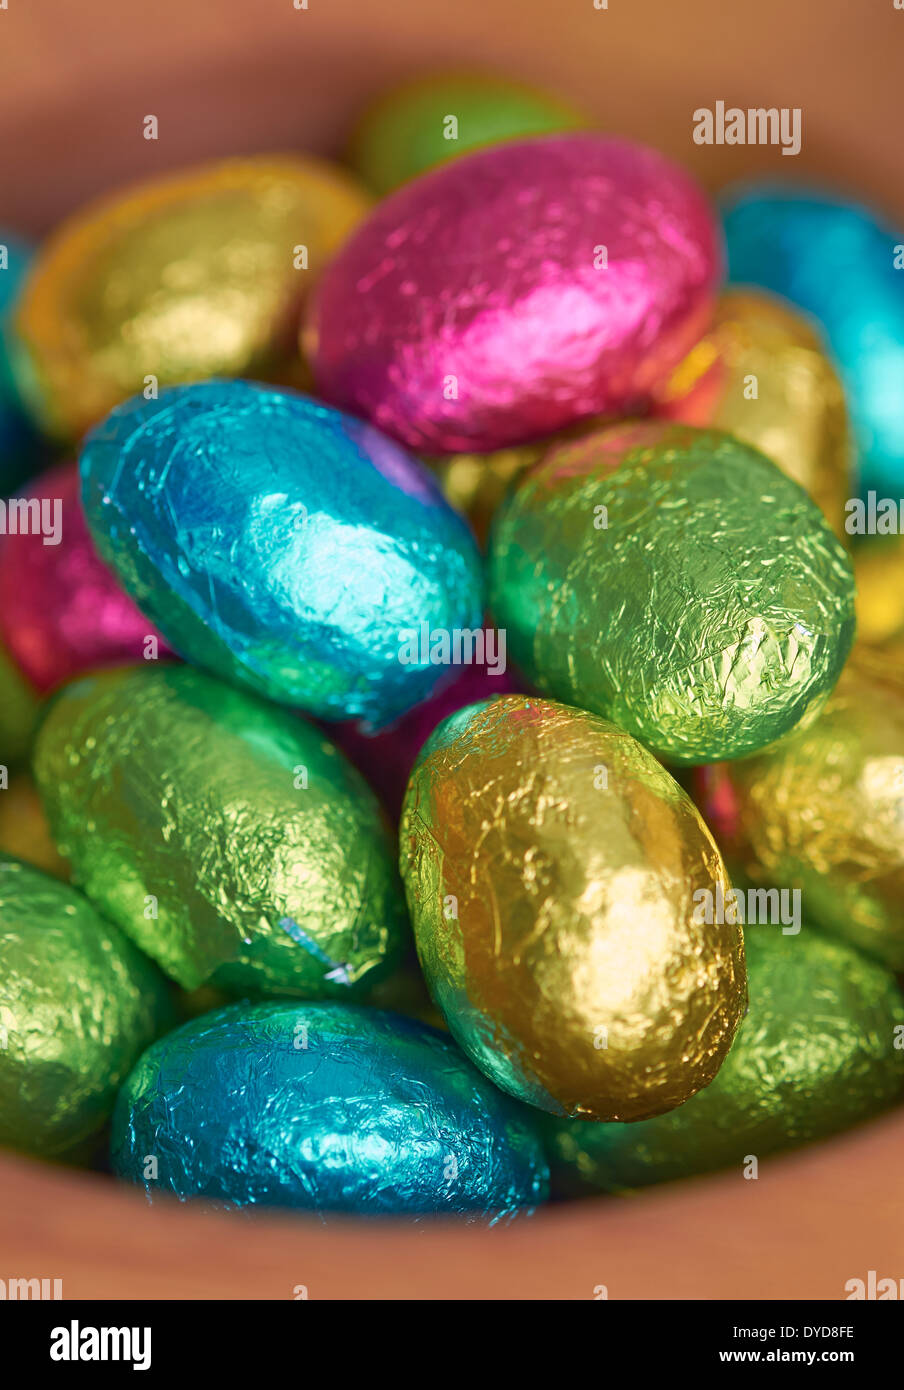 Colouful foil wrapped easter eggs in a bowl. - Stock Image